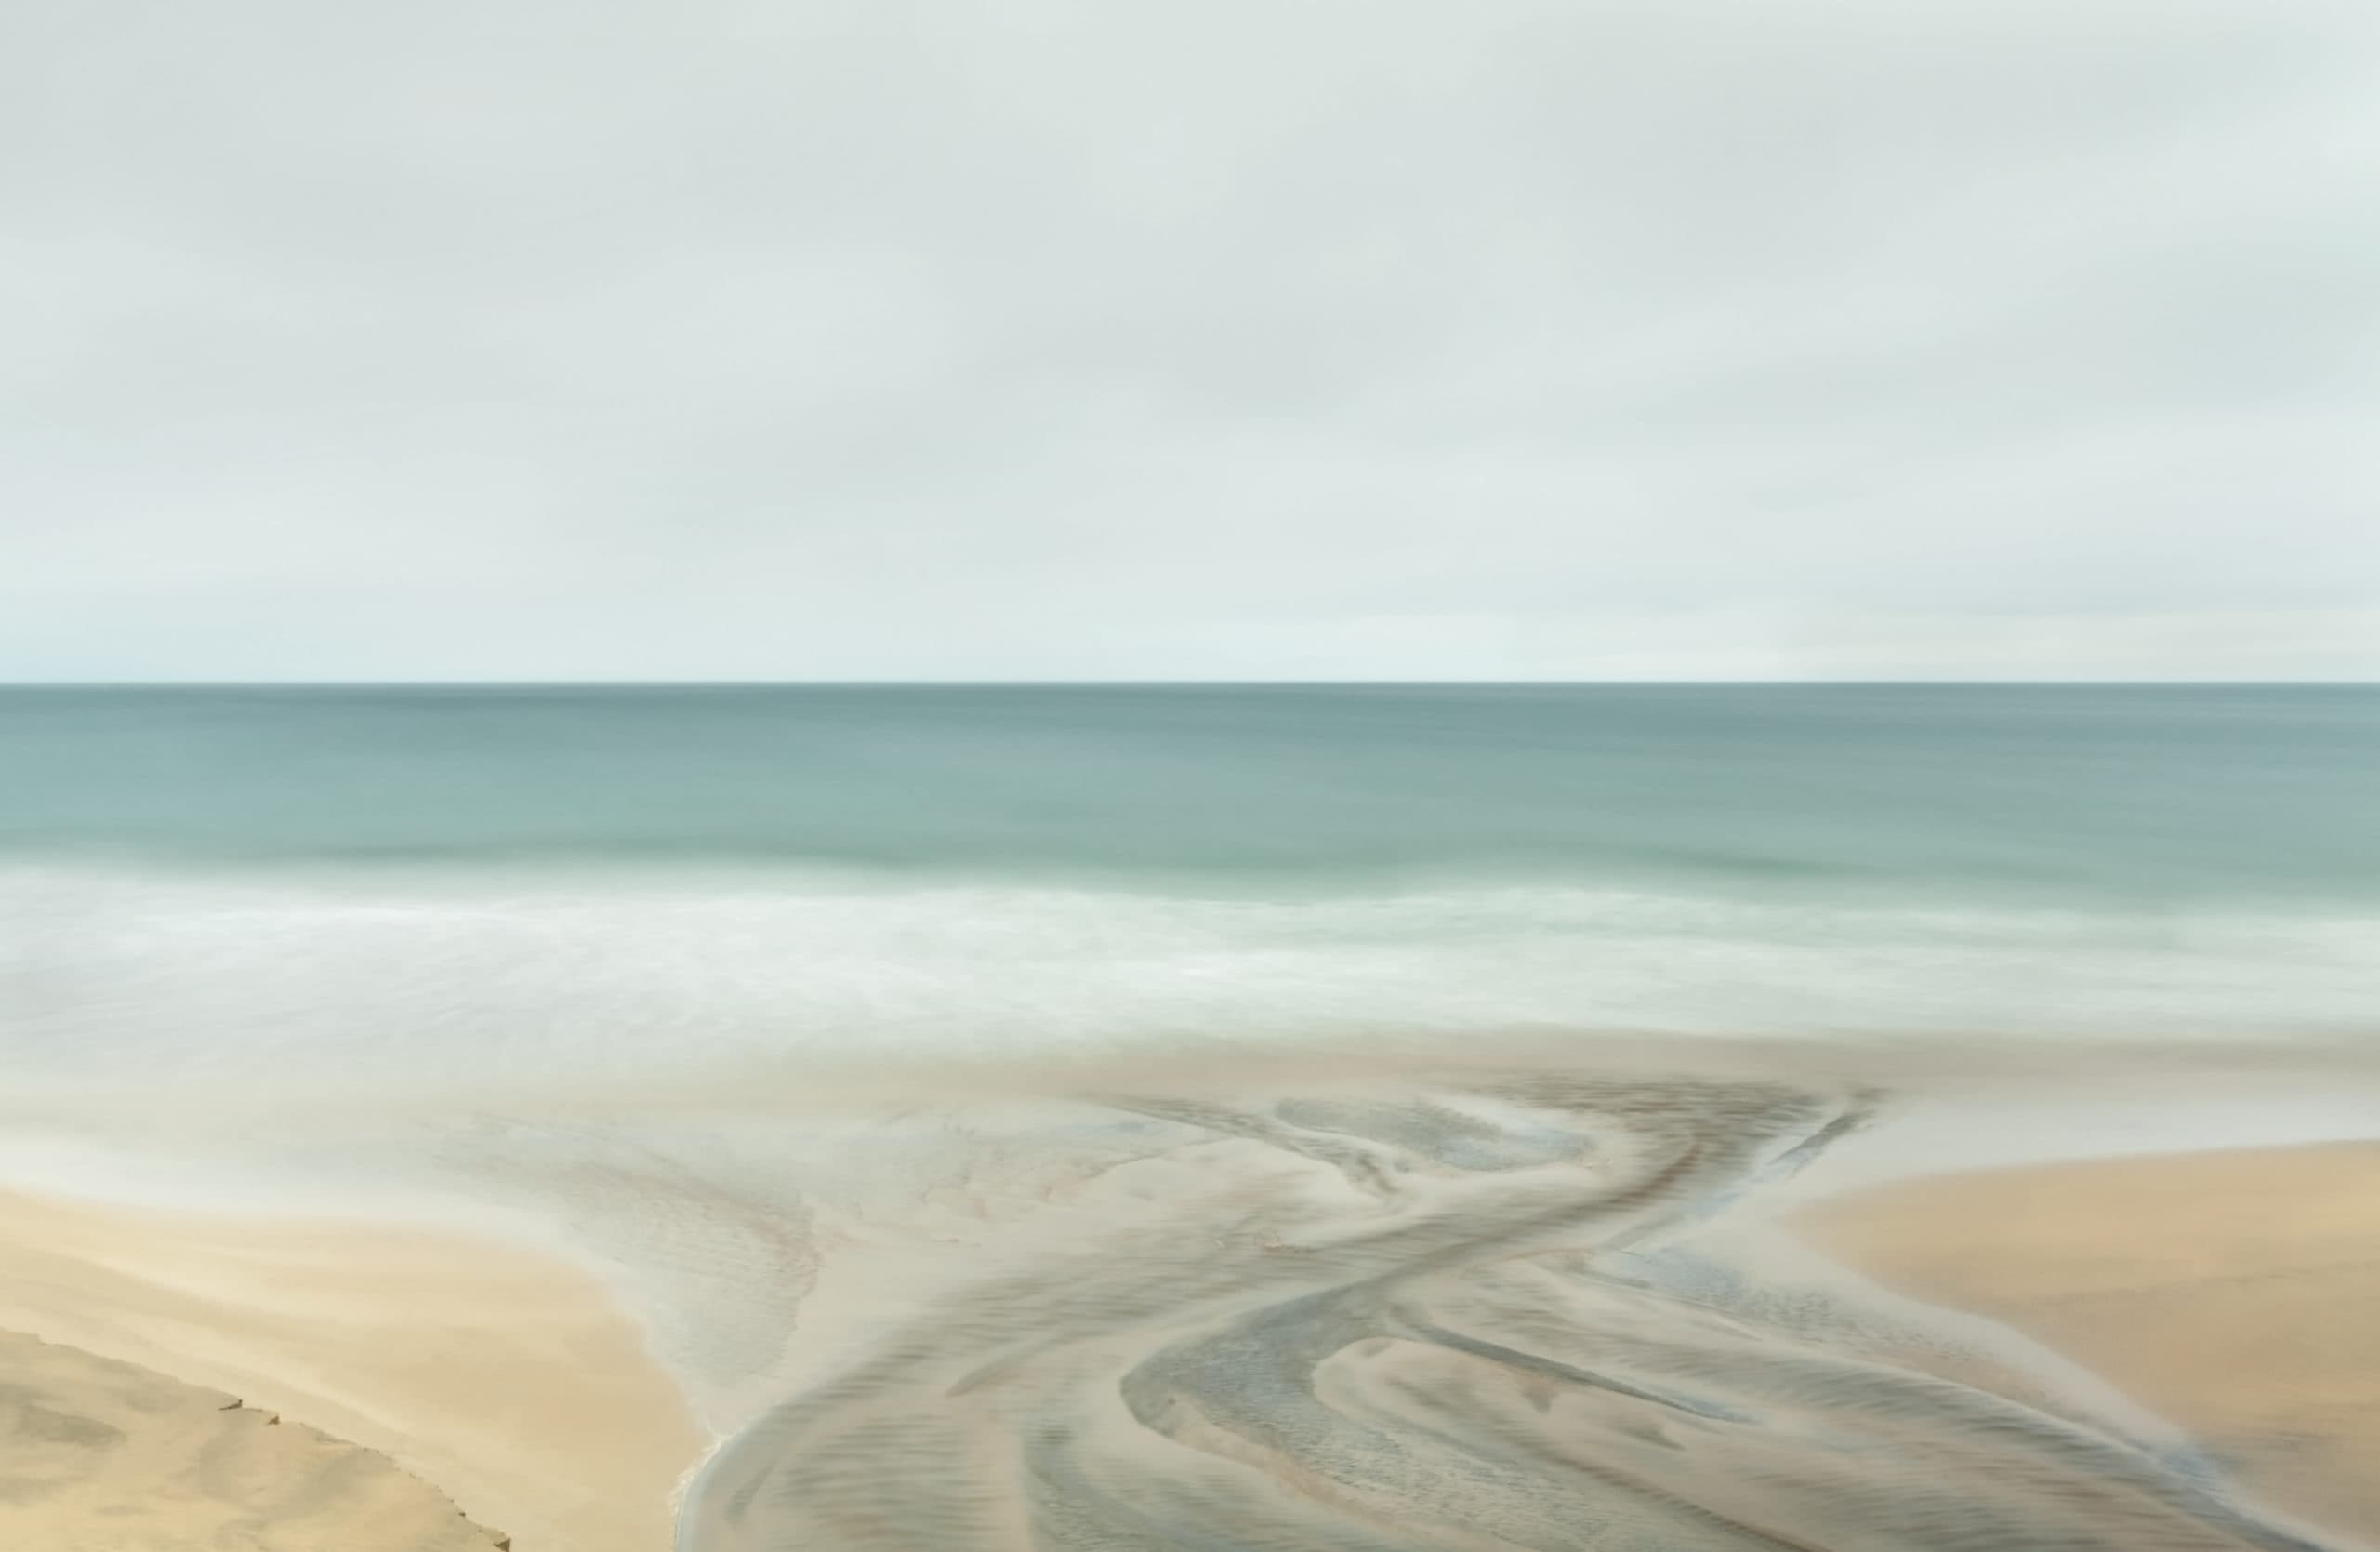 Hebridean Seascape, photographed by Jade Starmore